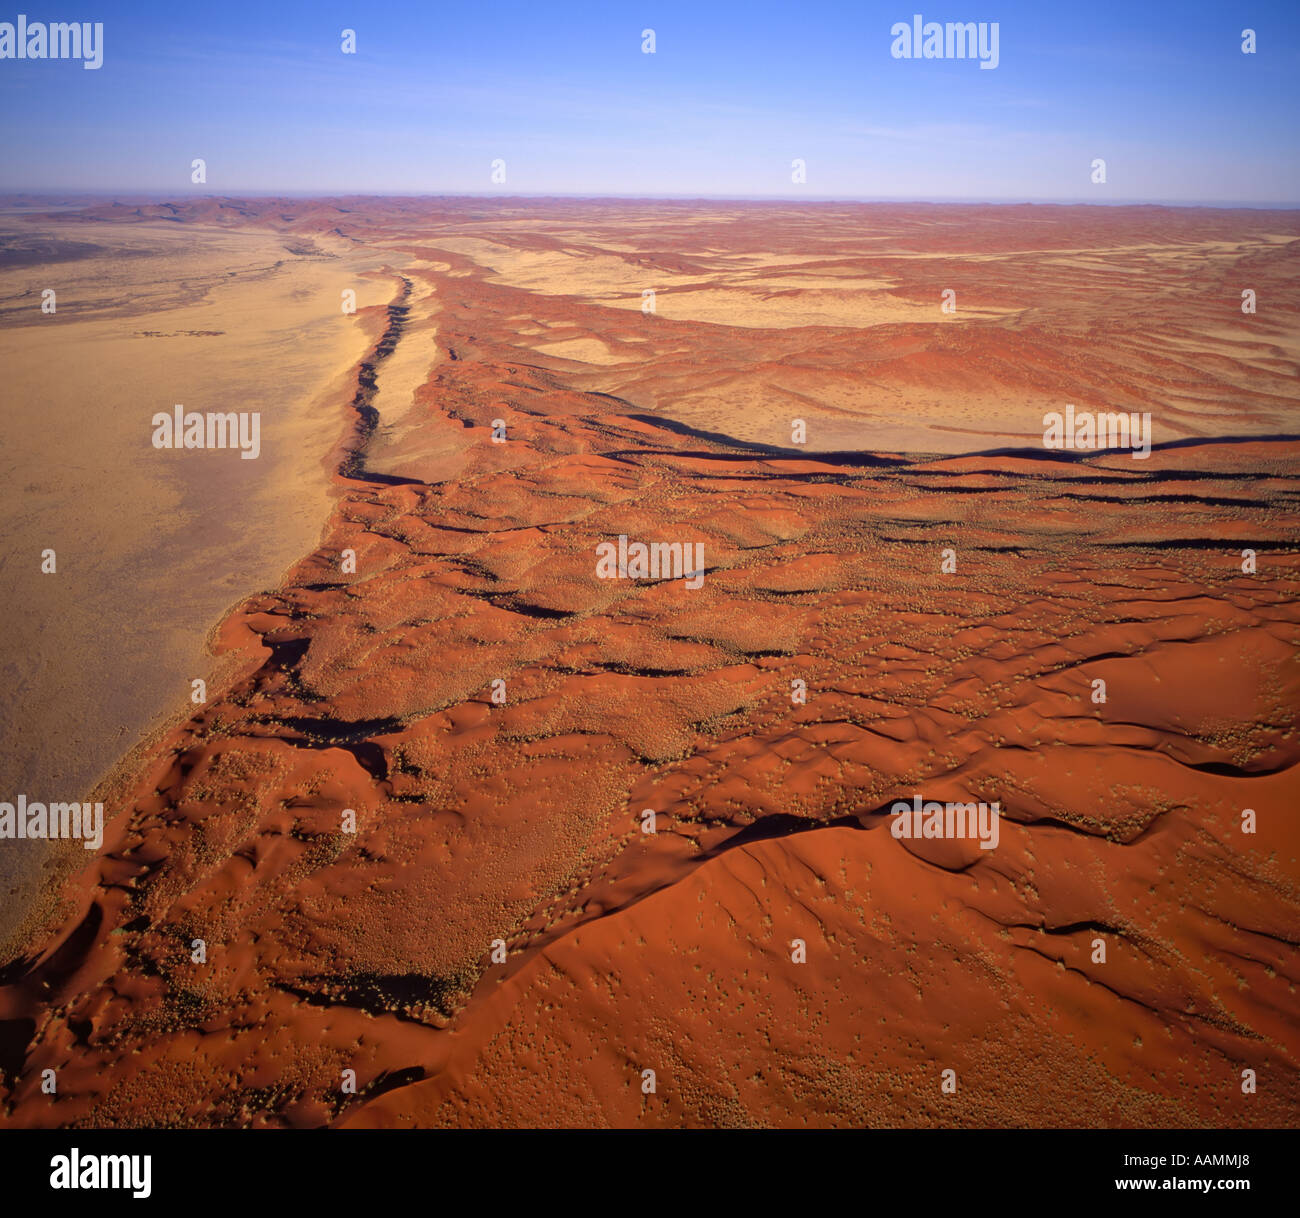 Linear sand dunes in the Namib Naukluft National Park, from Hot Air Balloon, Namibia - Stock Image